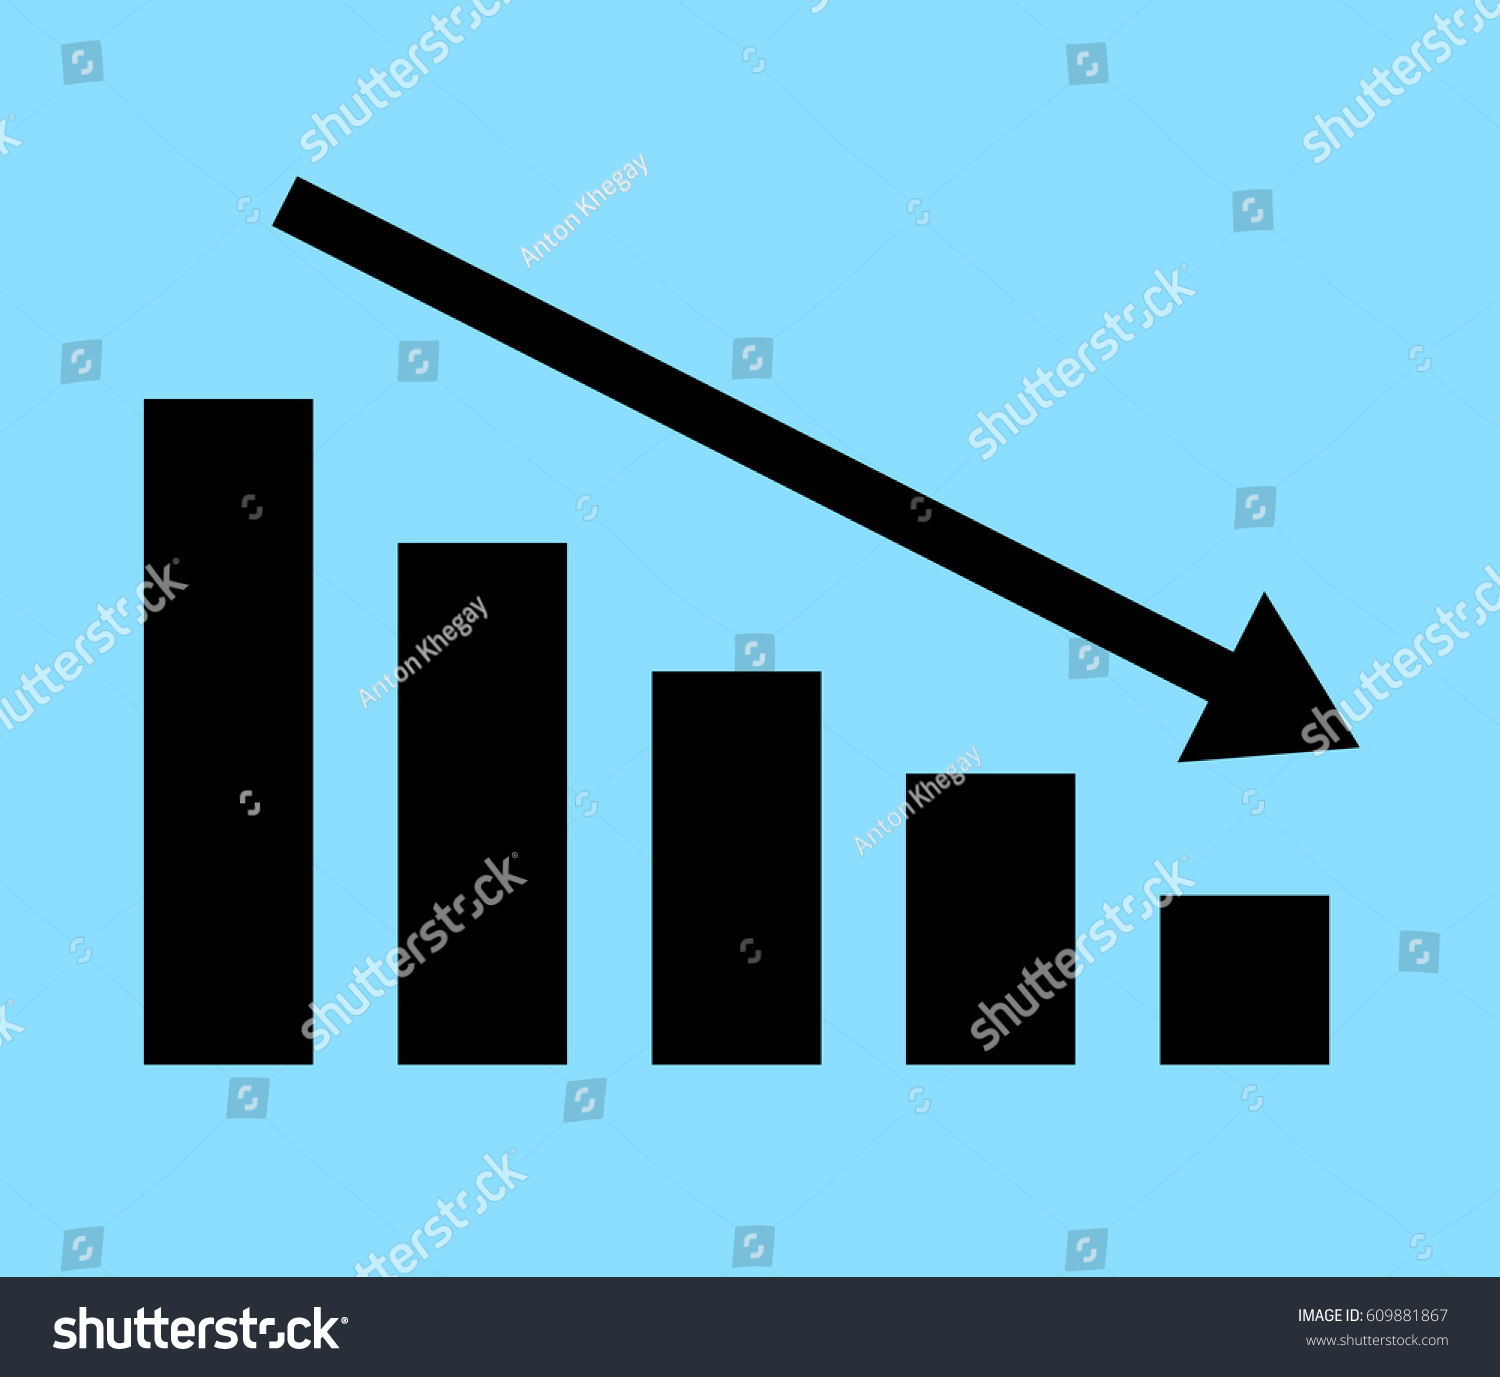 Downward graph symbol vector icons all stock vector 609881867 downward graph symbol vector icons for all projects biocorpaavc Gallery